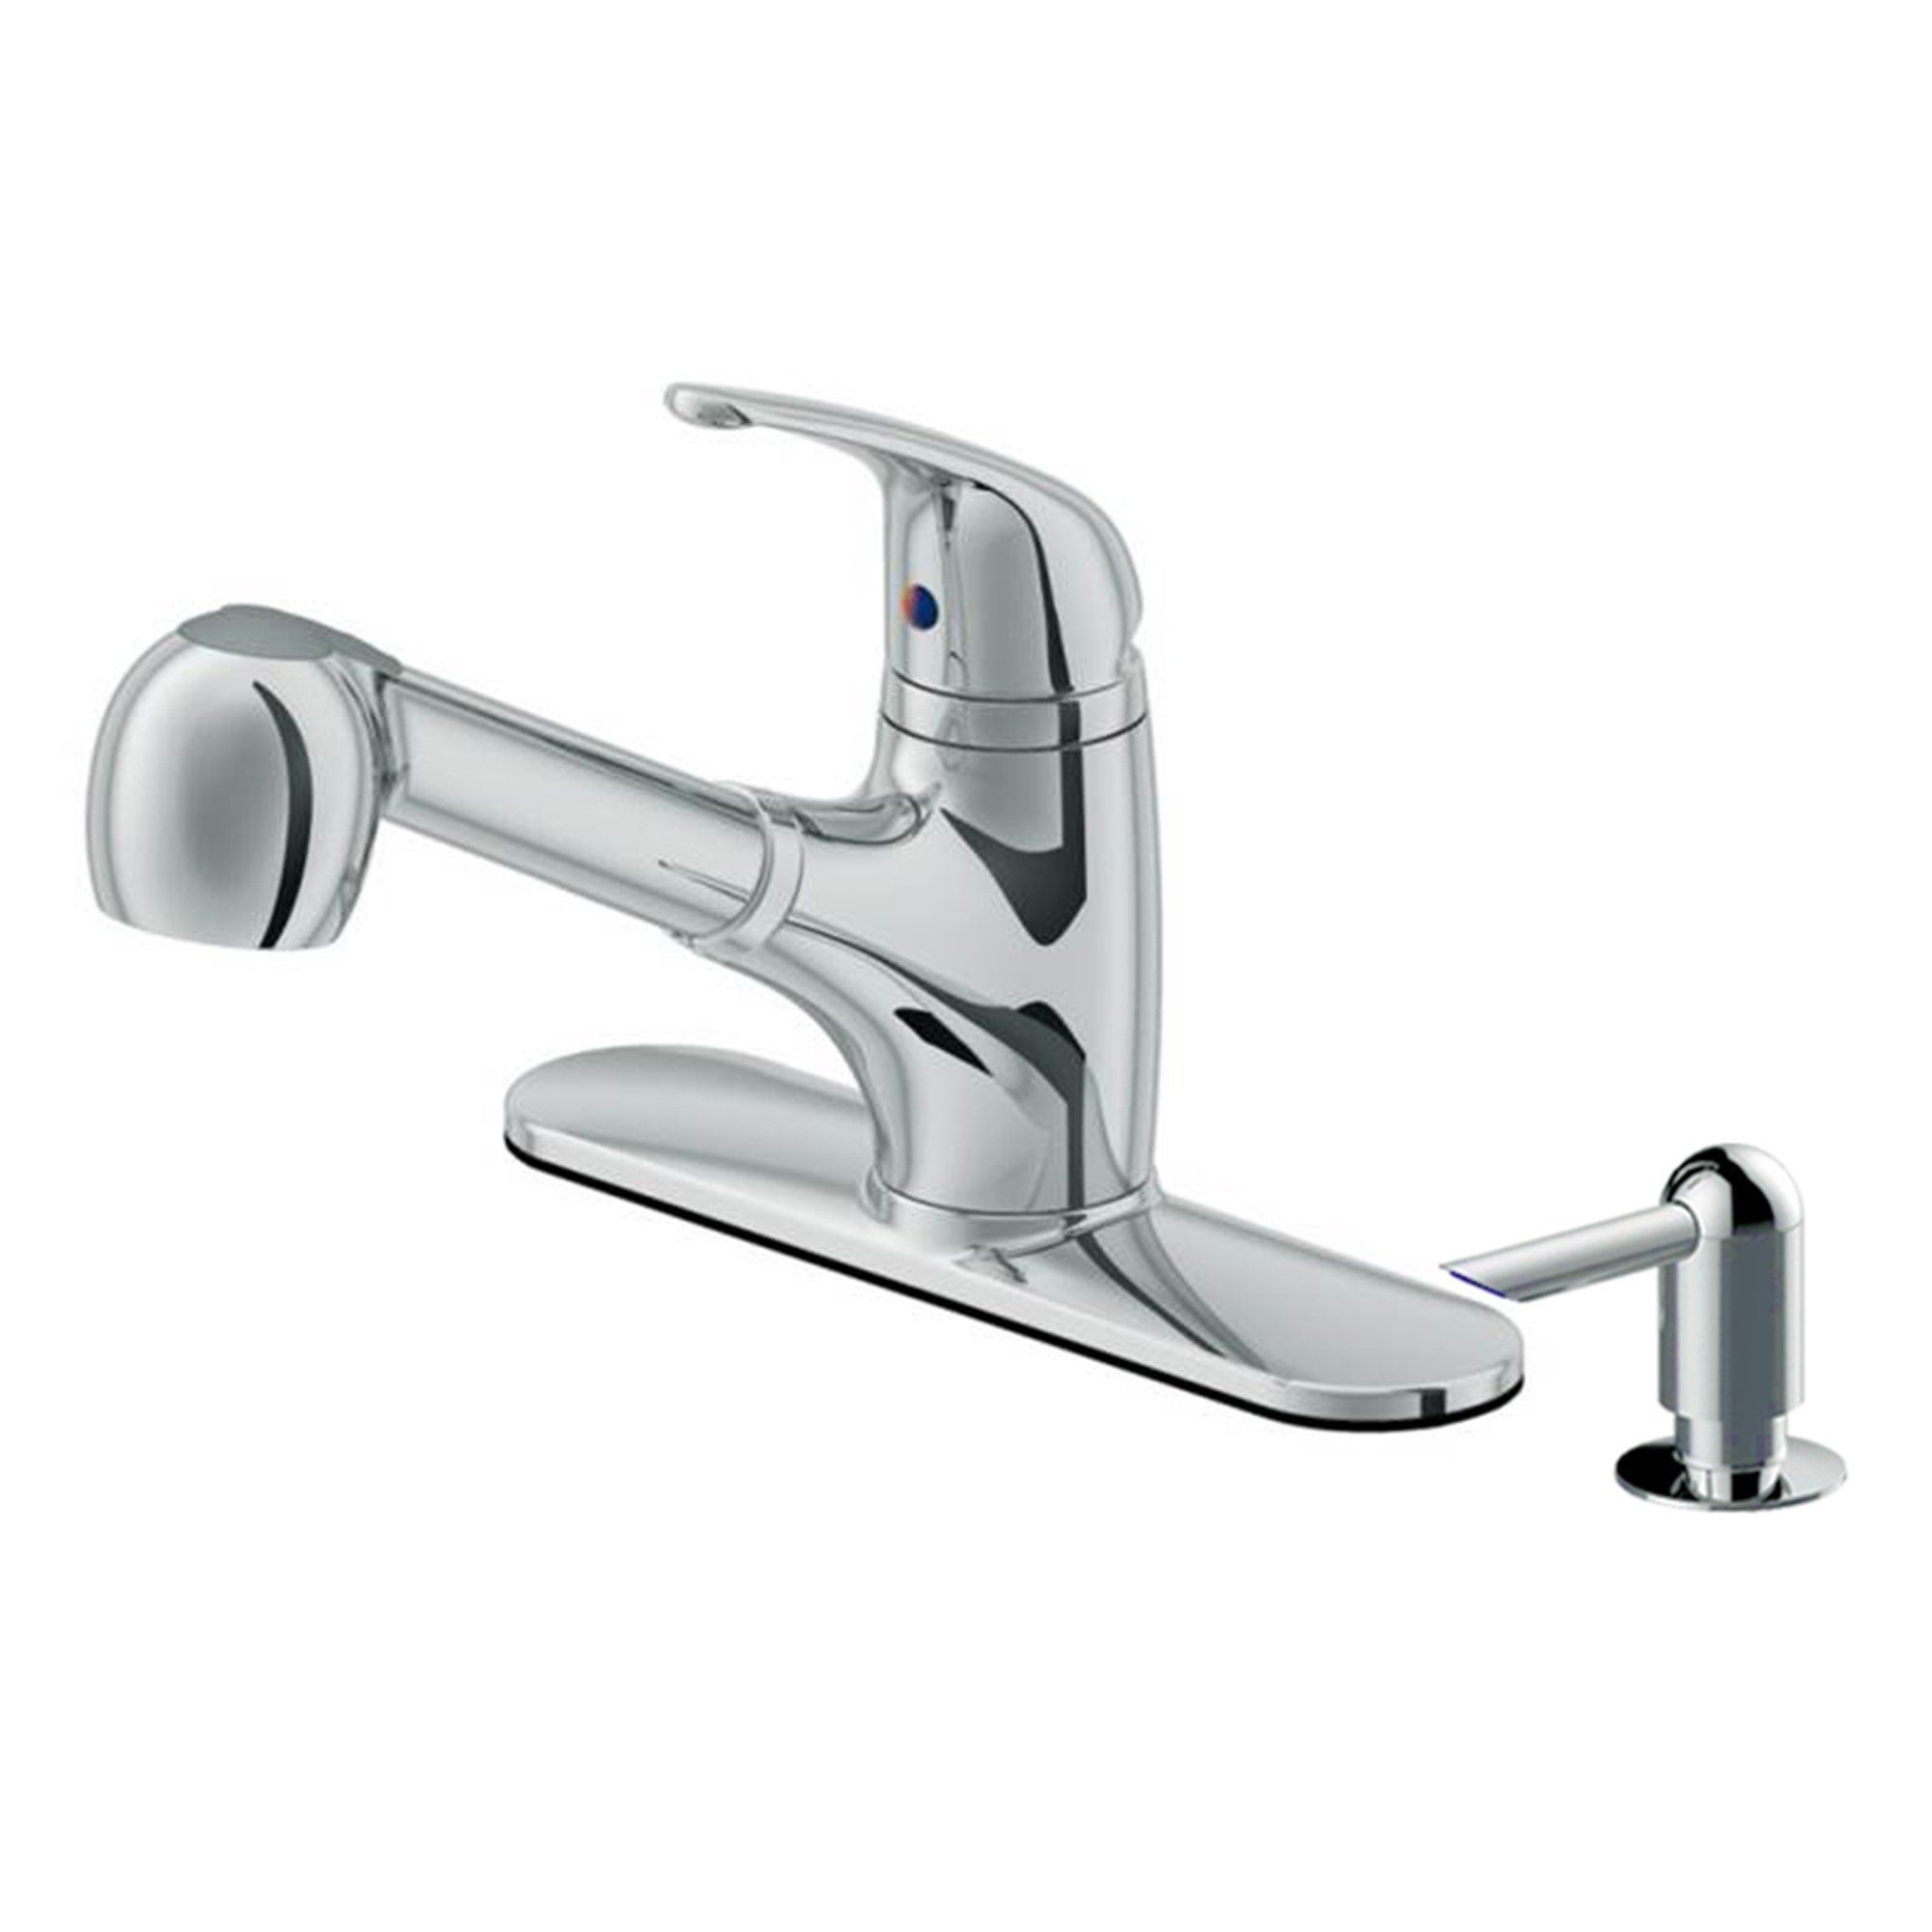 Low Profile Pull Out Kitchen Faucet With Dispenser In Chrome